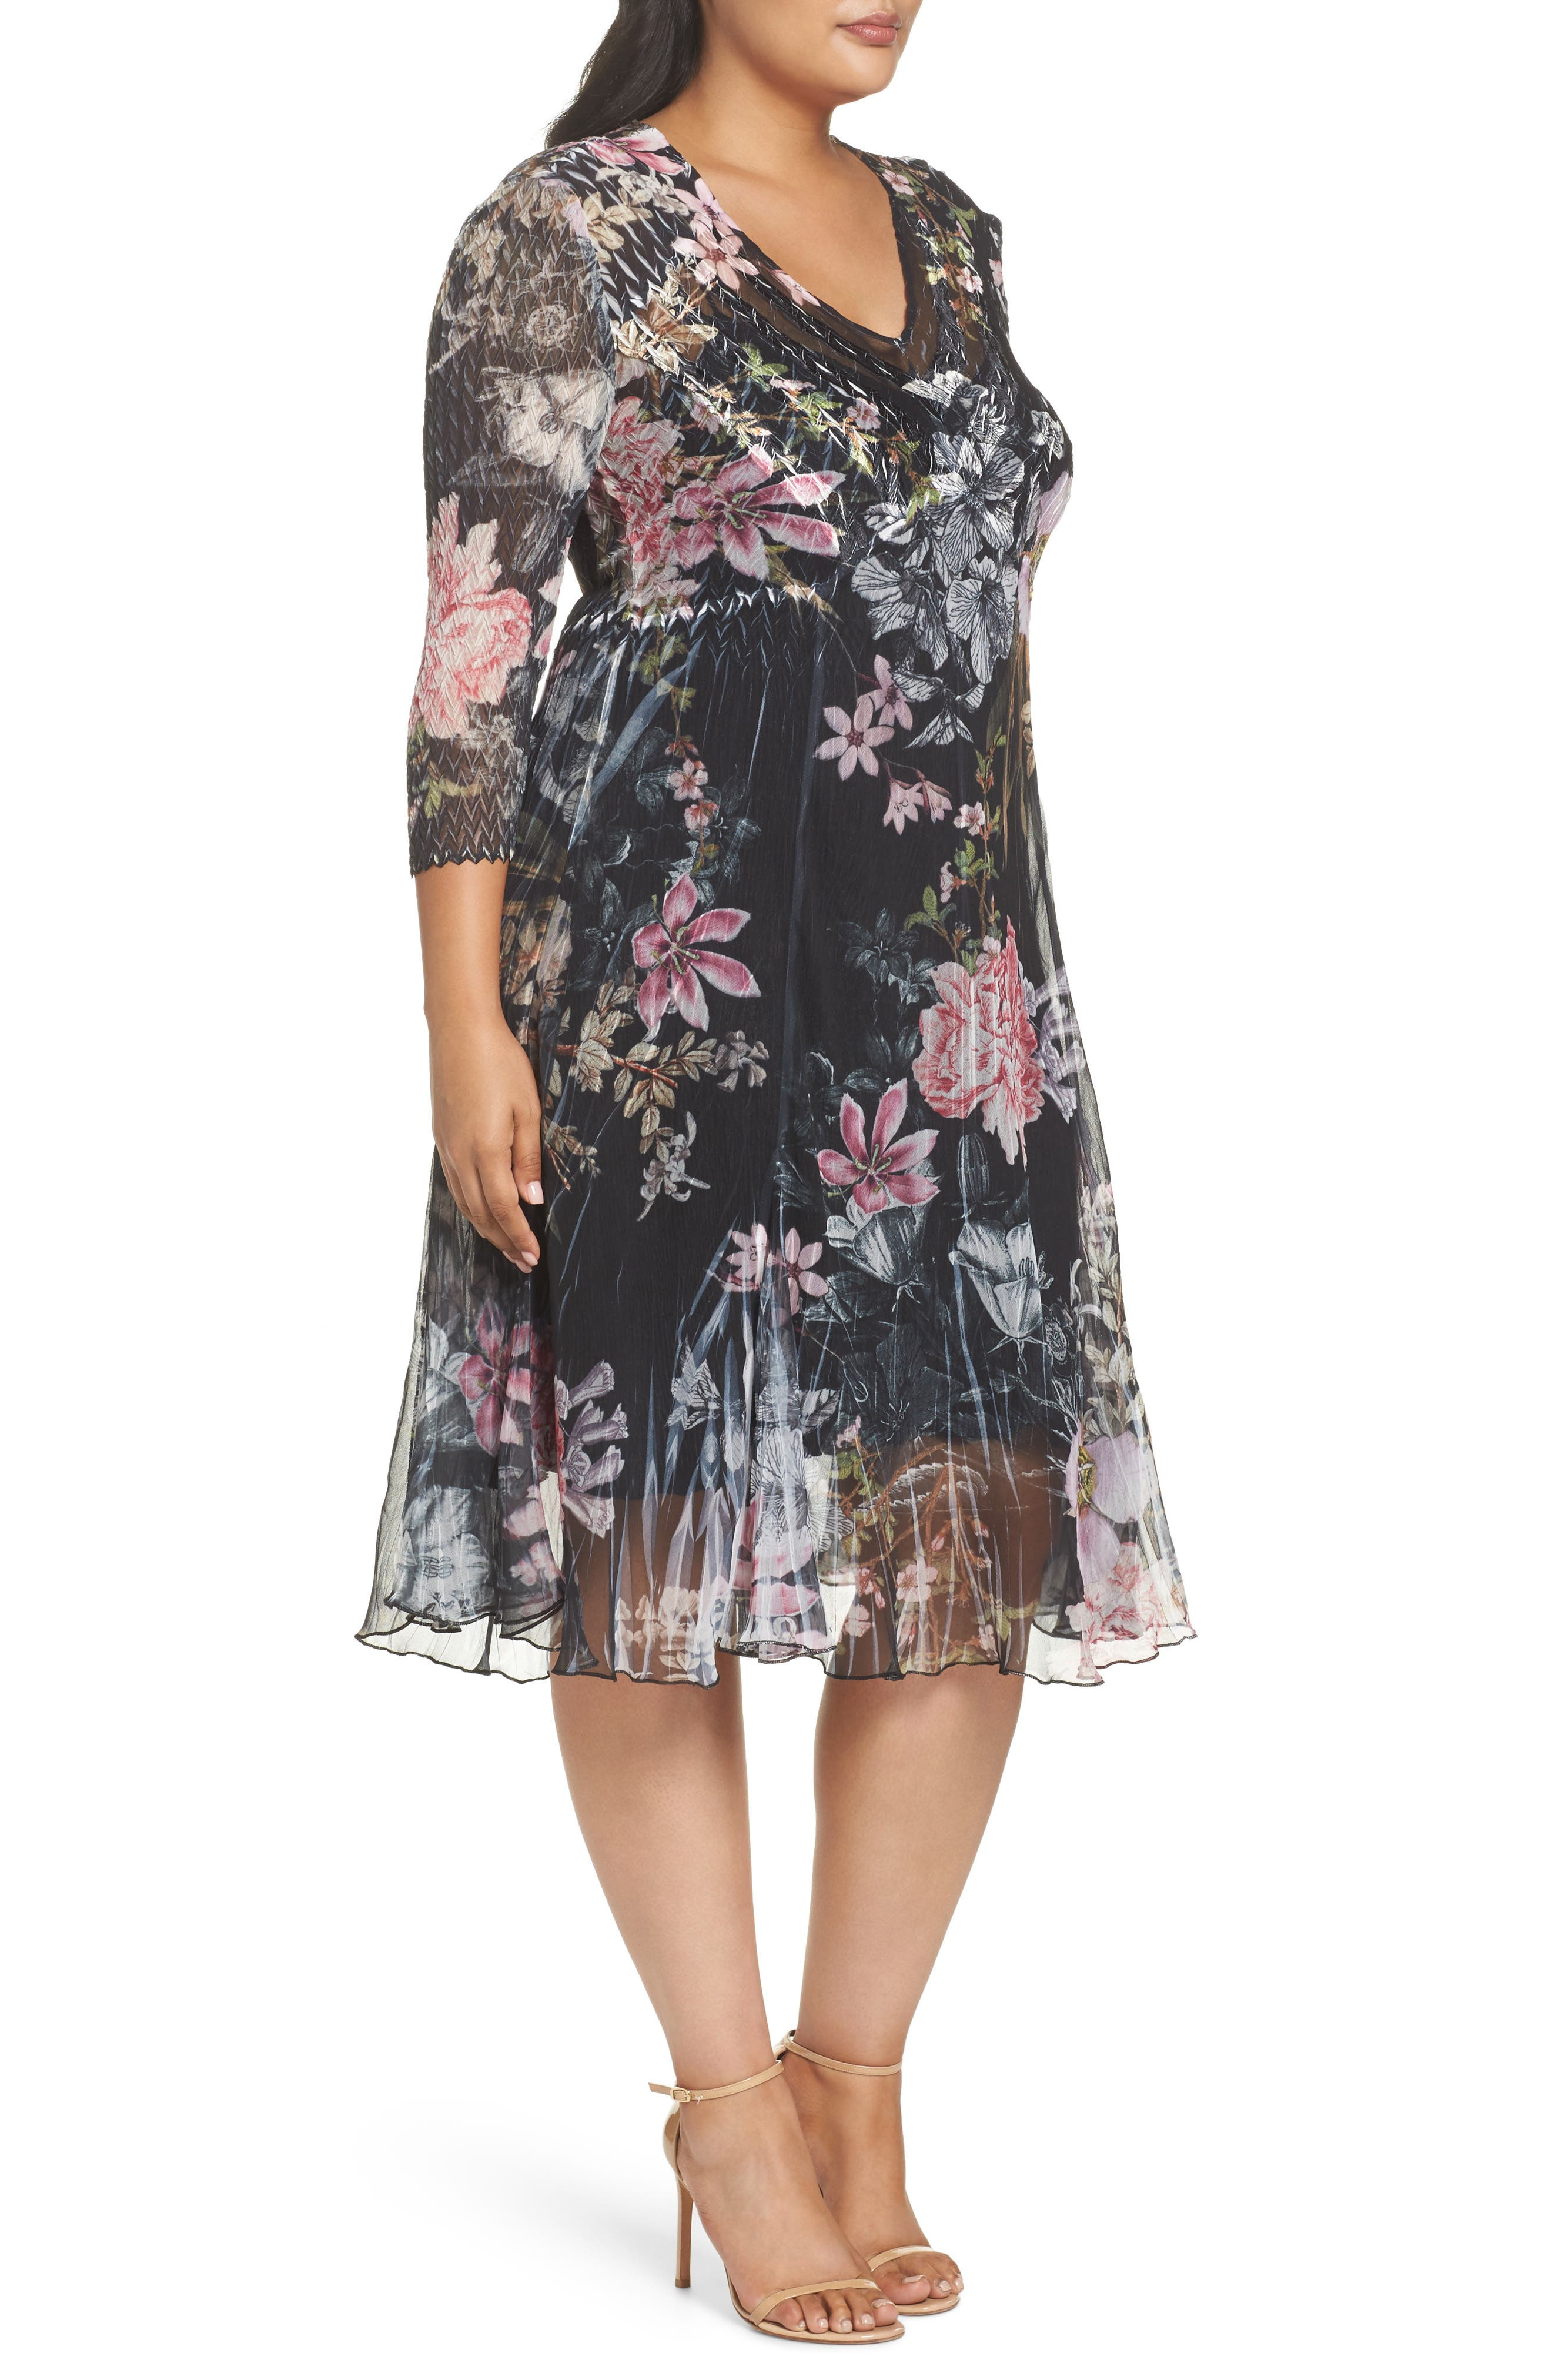 Kamarov Floral Charmeuse & Chiffon Floral A-Line Dress,                             Alternate thumbnail 3, color,                             Moon Flower